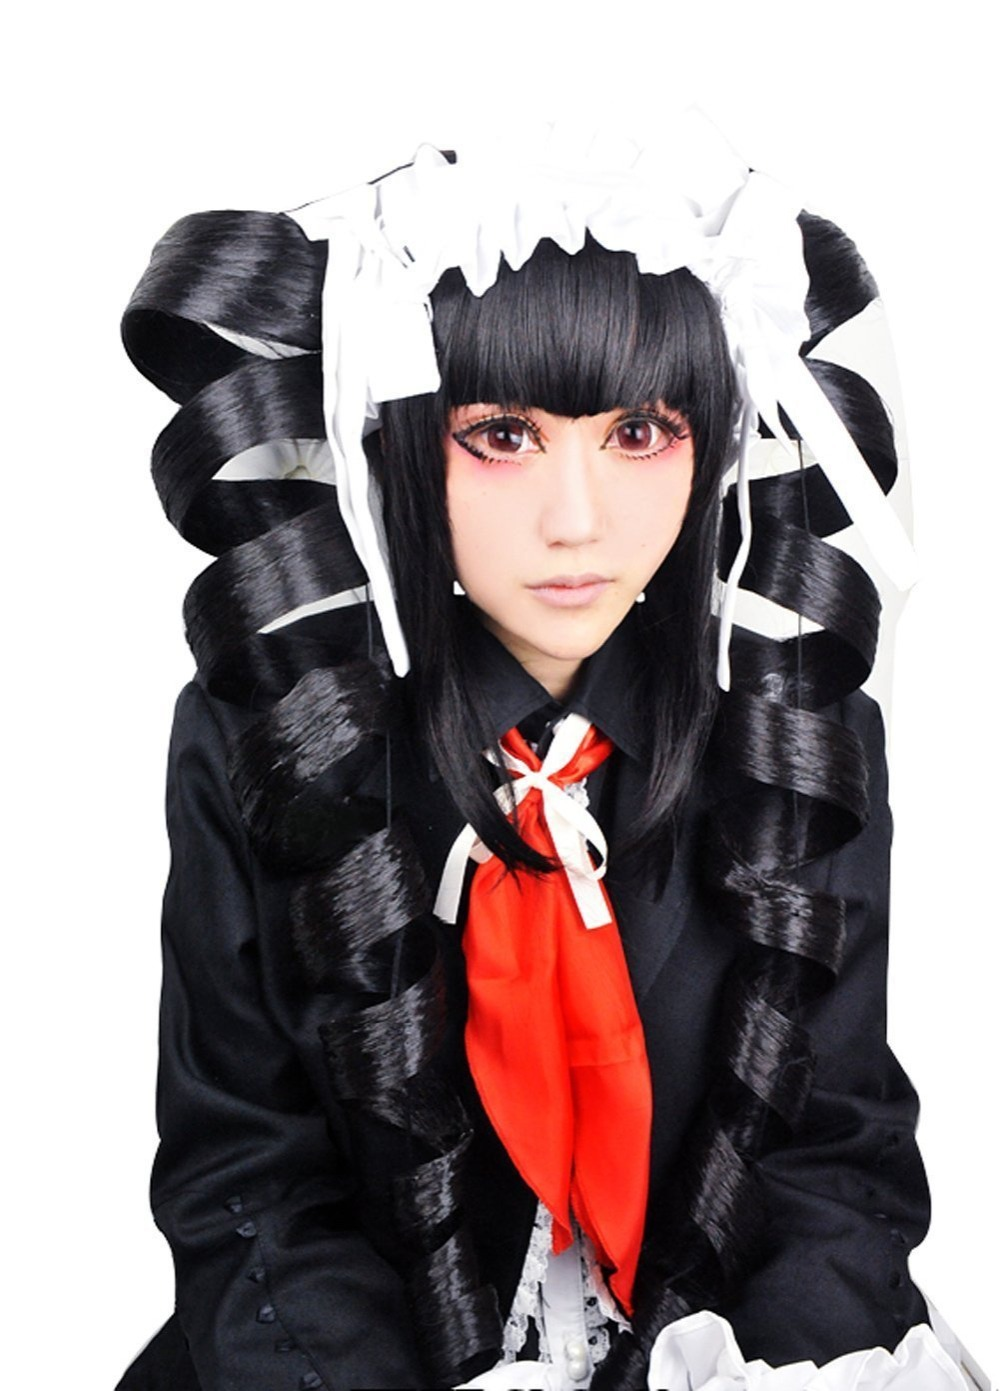 Danganronpa Dangan-ronpa Celestia Ludenberg Black Styled Long Ponytails Without Hair Accessory Party Costume Cosplay Wig<br><br>Aliexpress